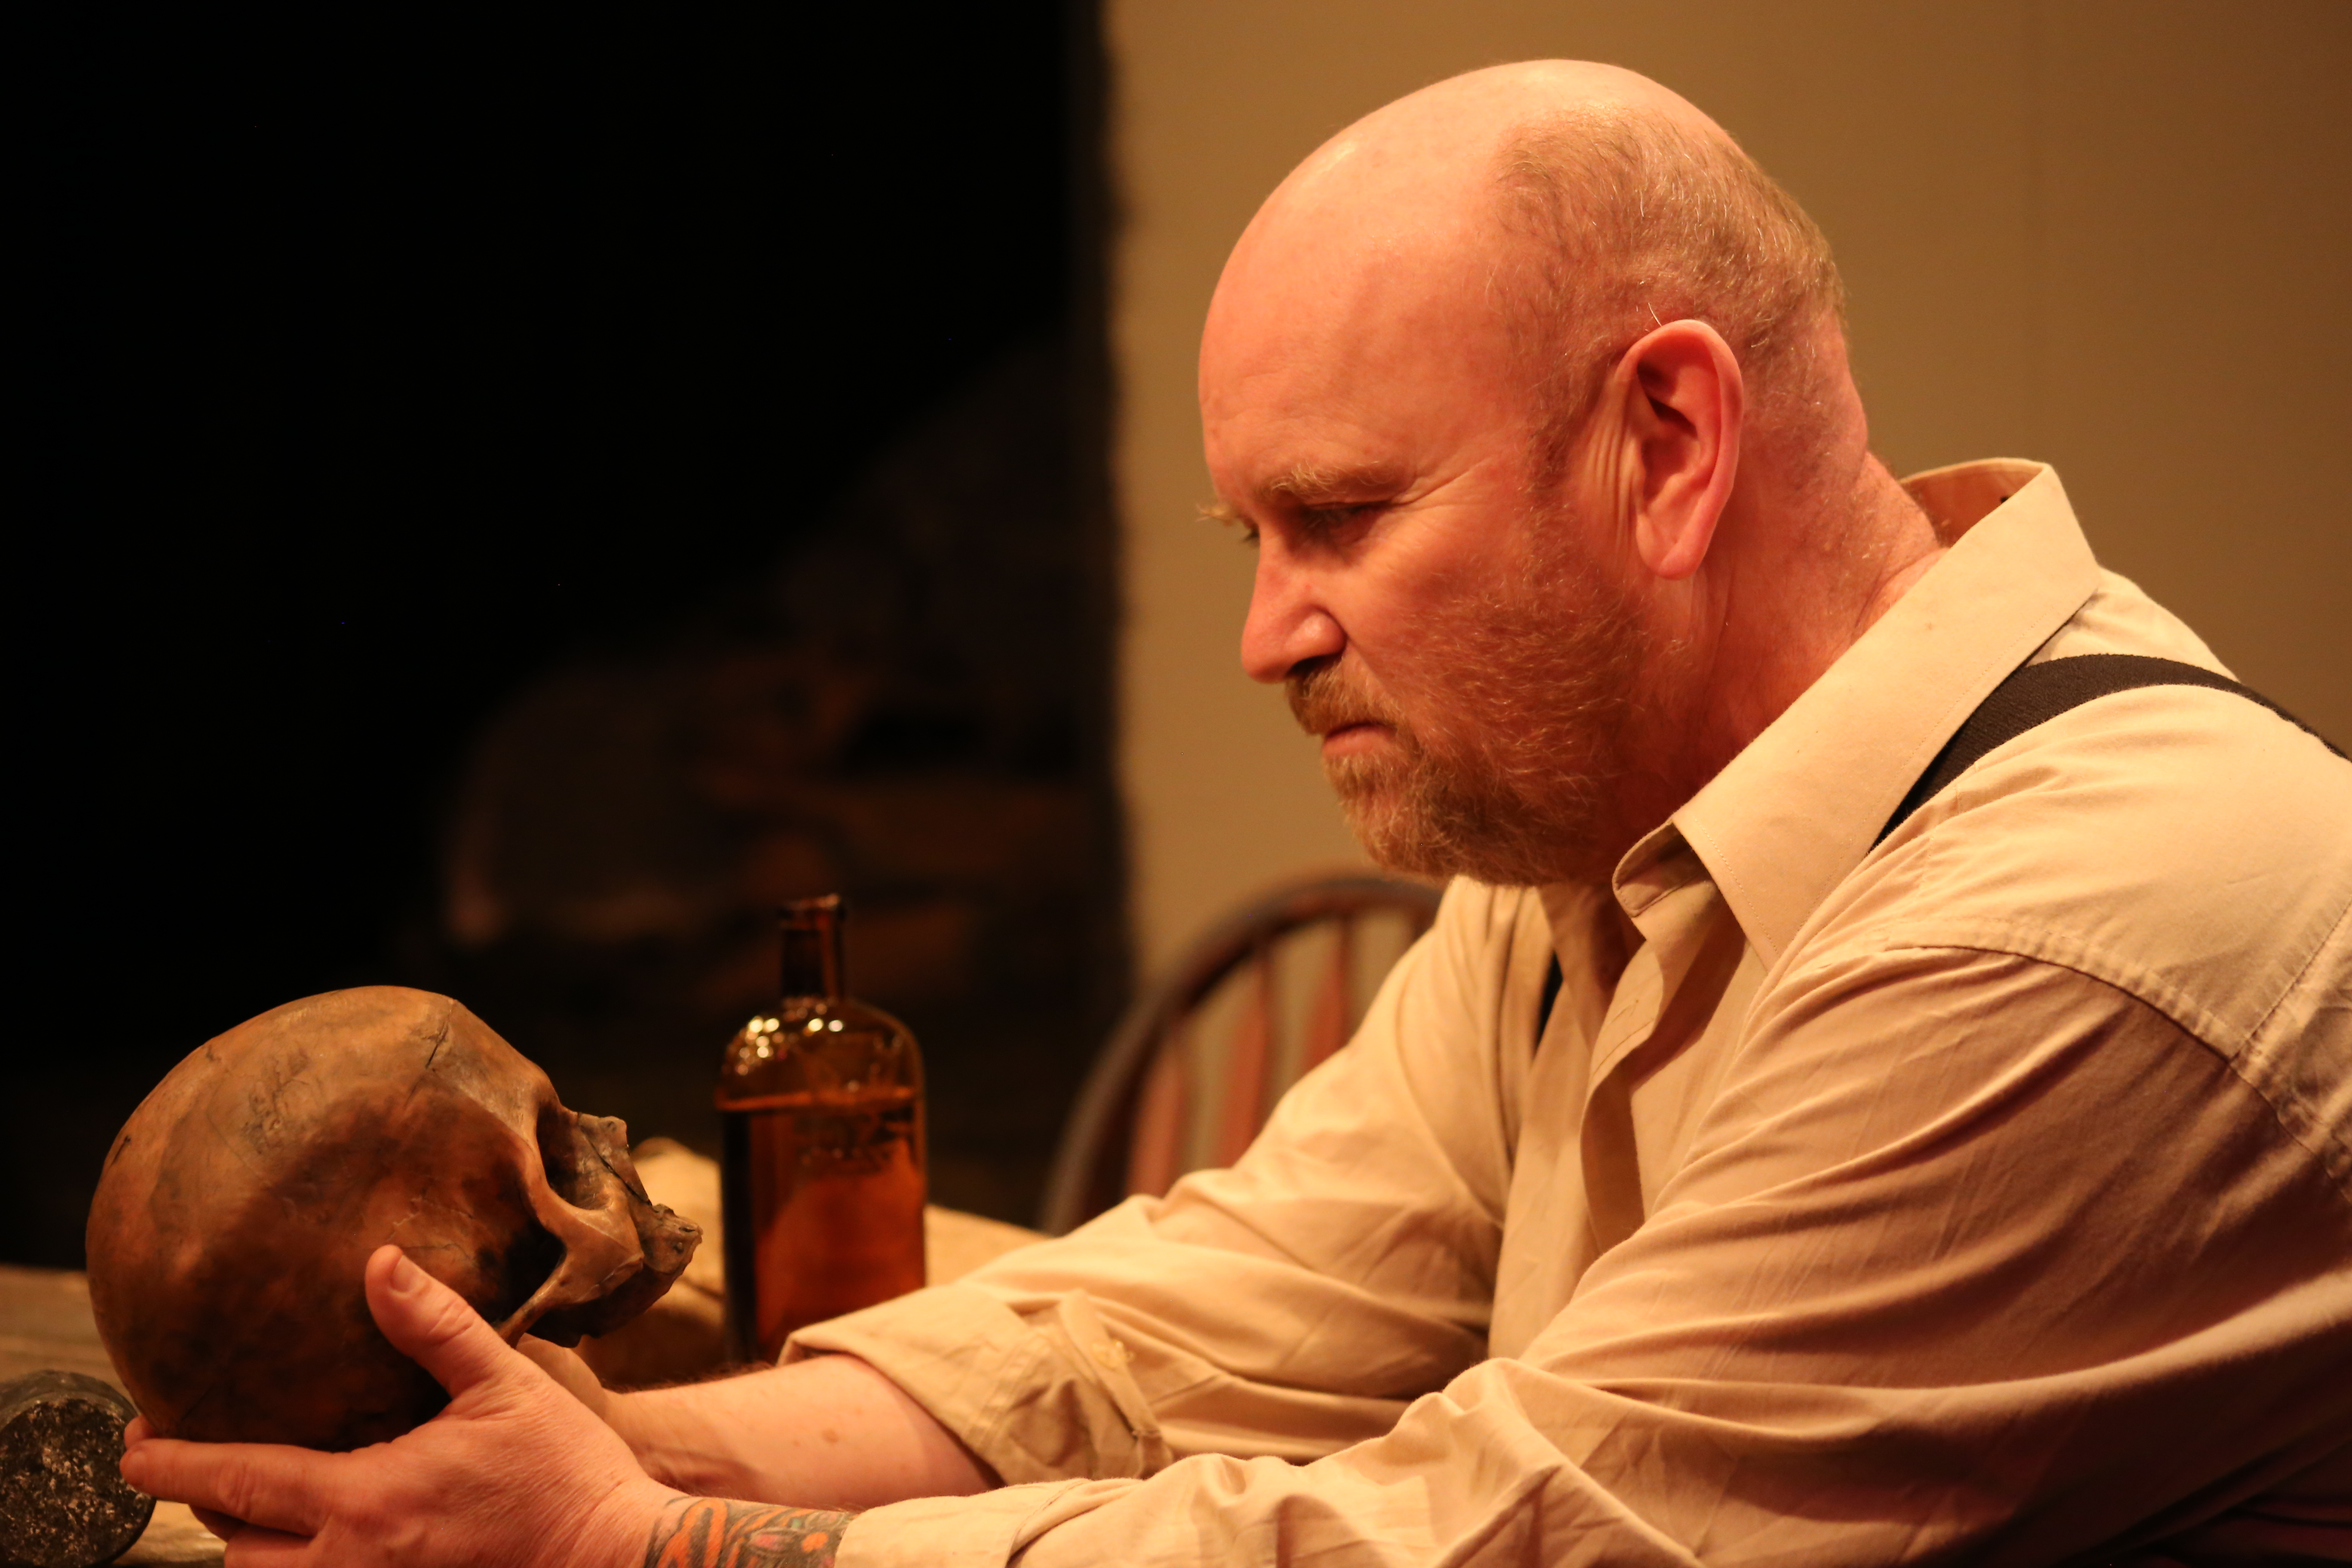 BWW Review: A Tale of Disinterring Bodies Makes For Wild Night of Irish Black Comedy at none too fragile